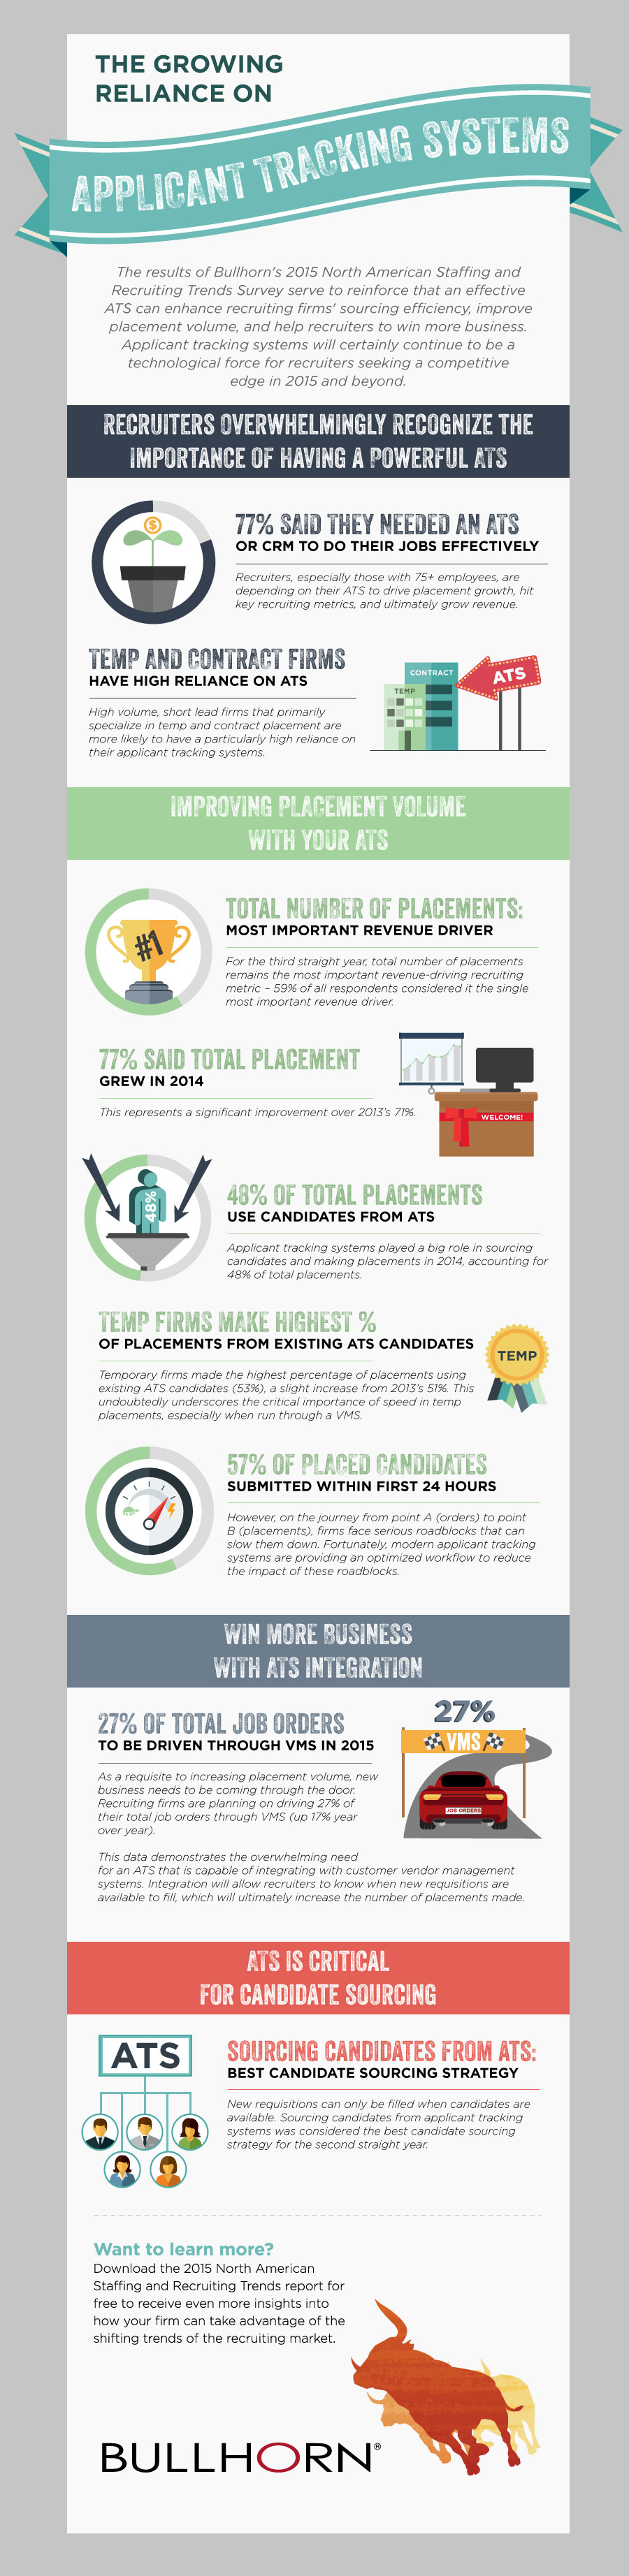 applicant tracking system infographic bullhorn 2015 trends report infographic trends button